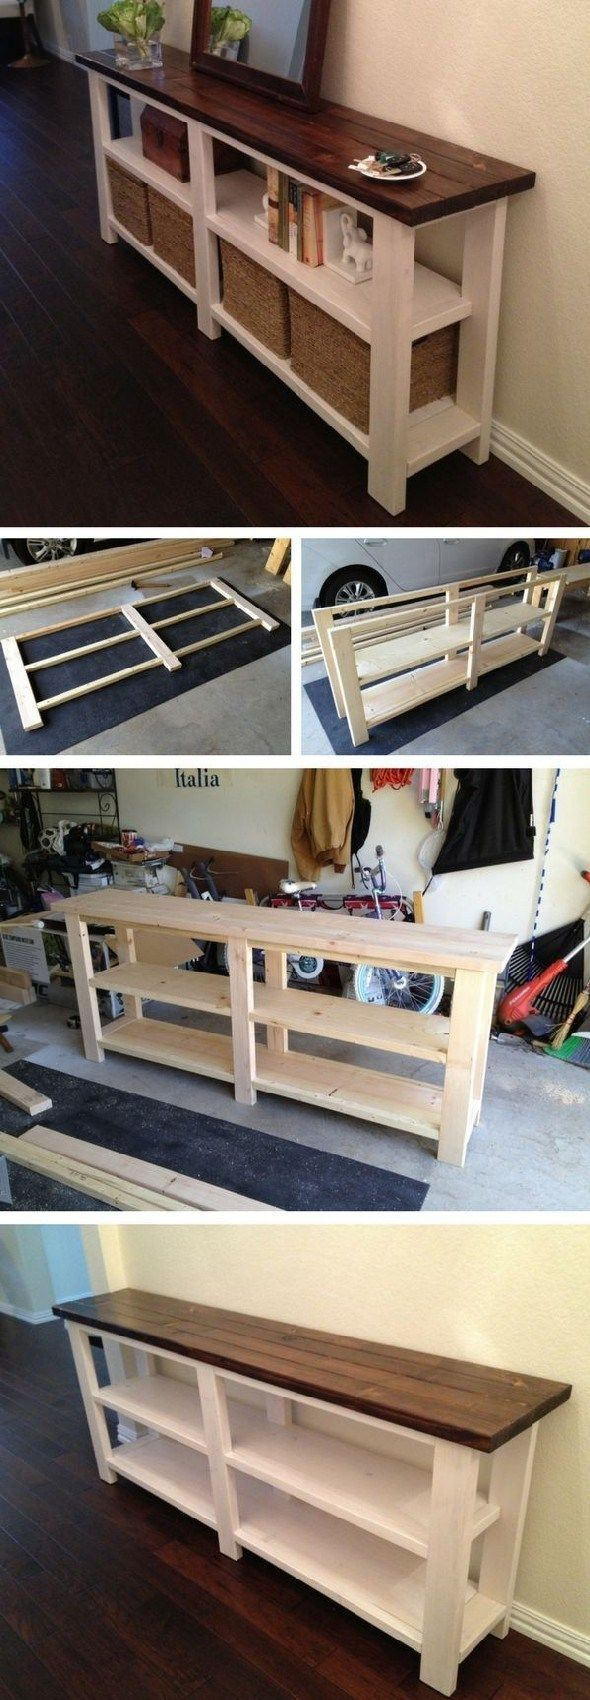 Best Amazing DIY Furniture Ideas to Steal (32) - #Amazing #DIY #furniture #ideas #Steal #decorationentrance